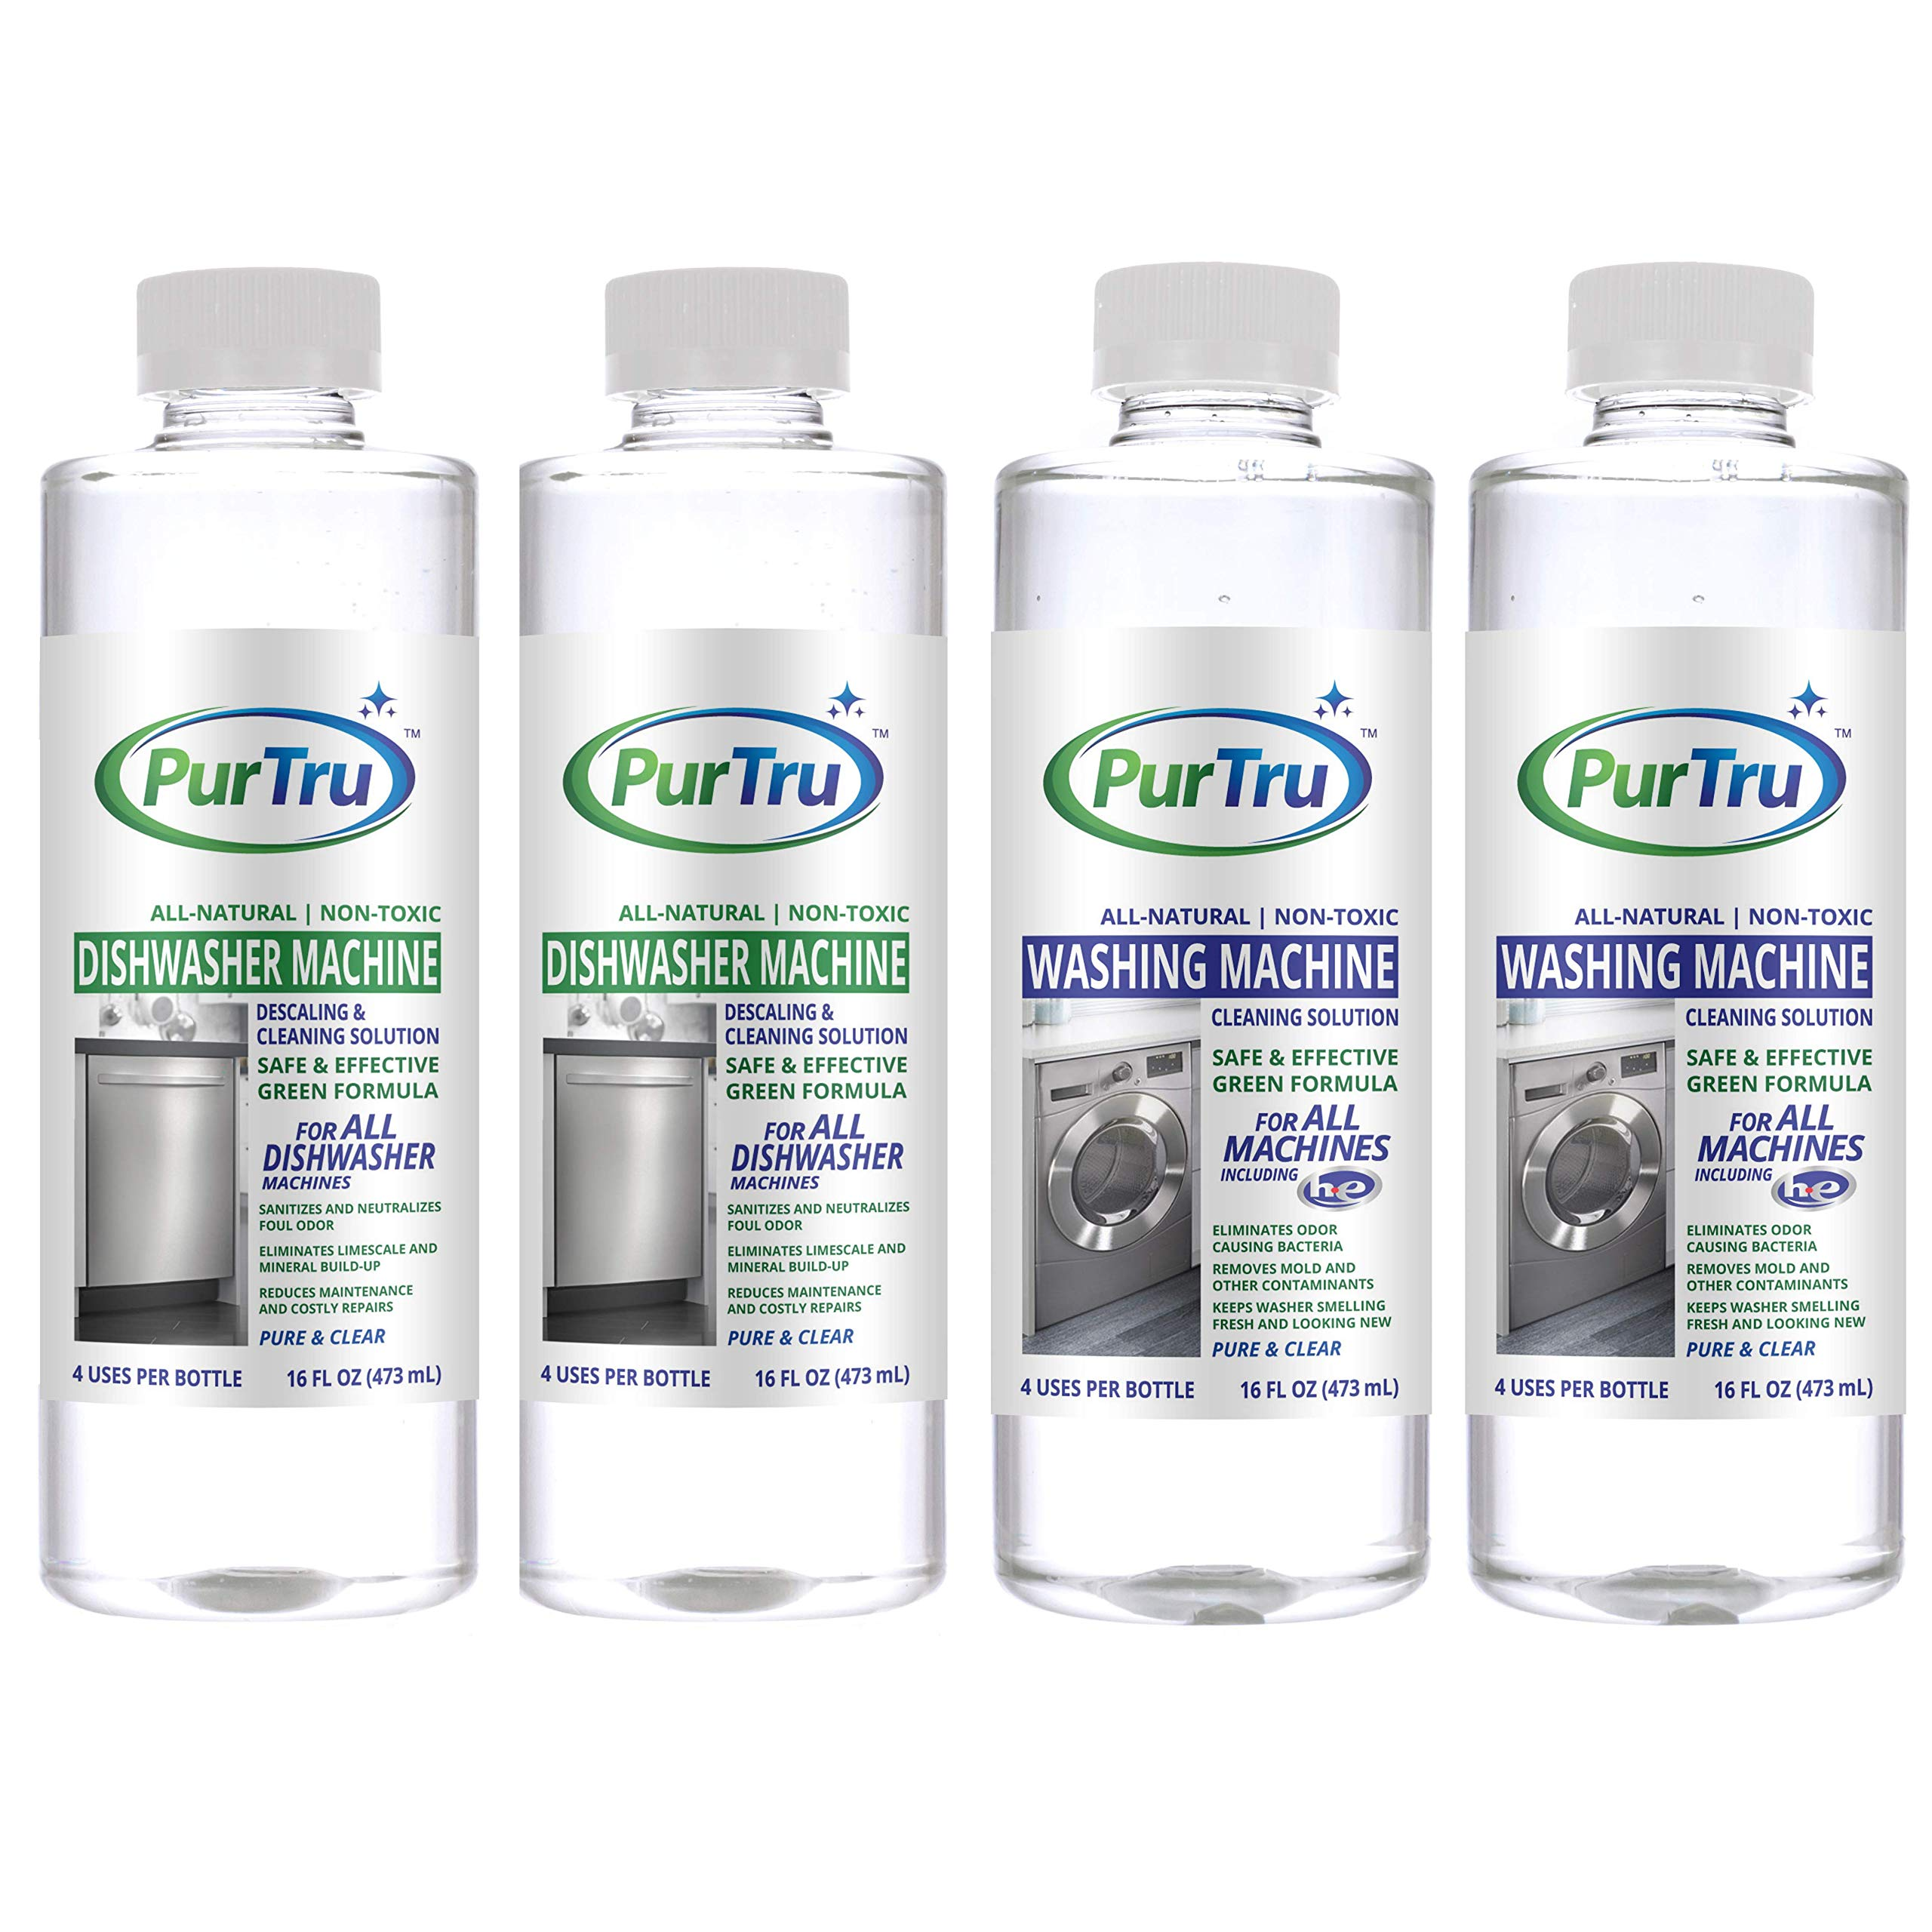 Dishwasher and Washing Machine Cleaner (4 Pack) - All-Natural Non-Toxic and Safe Descaling & Cleaning Solution for All Types of Dishwashers and HE and Non HE Washers by PurTru